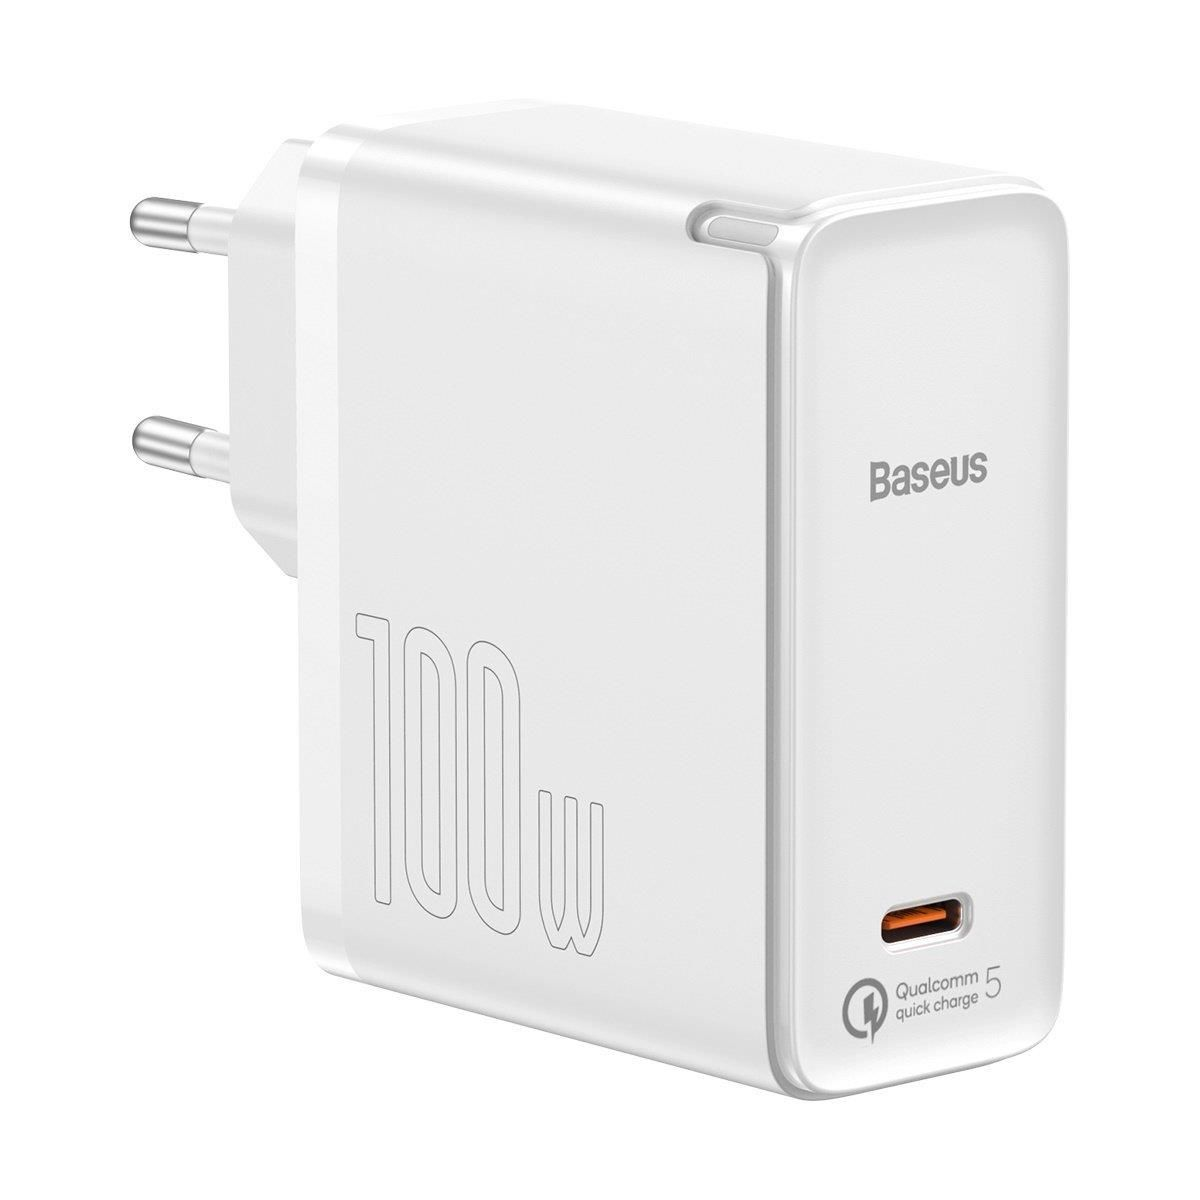 Baseus GaN2 Fast Charger 1C 100W with USB-C cable for USB-C 5A, 1,5m (white), Baseus